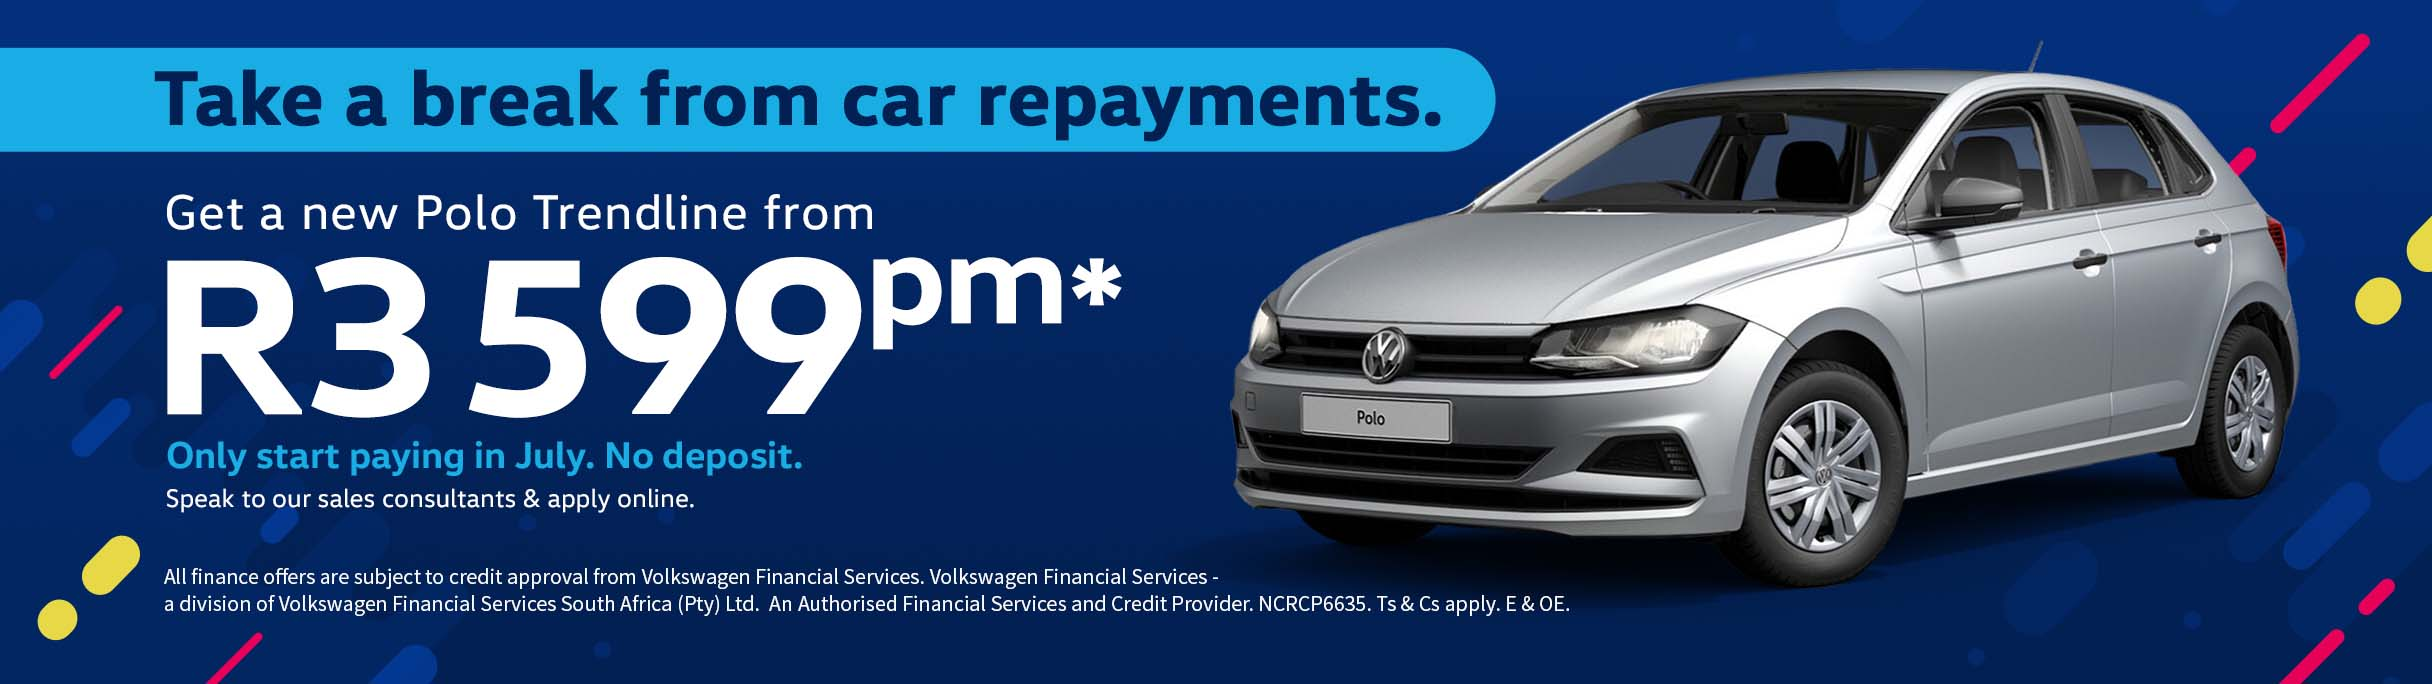 Barons Bellville VW Polo Trendline repayment break offer